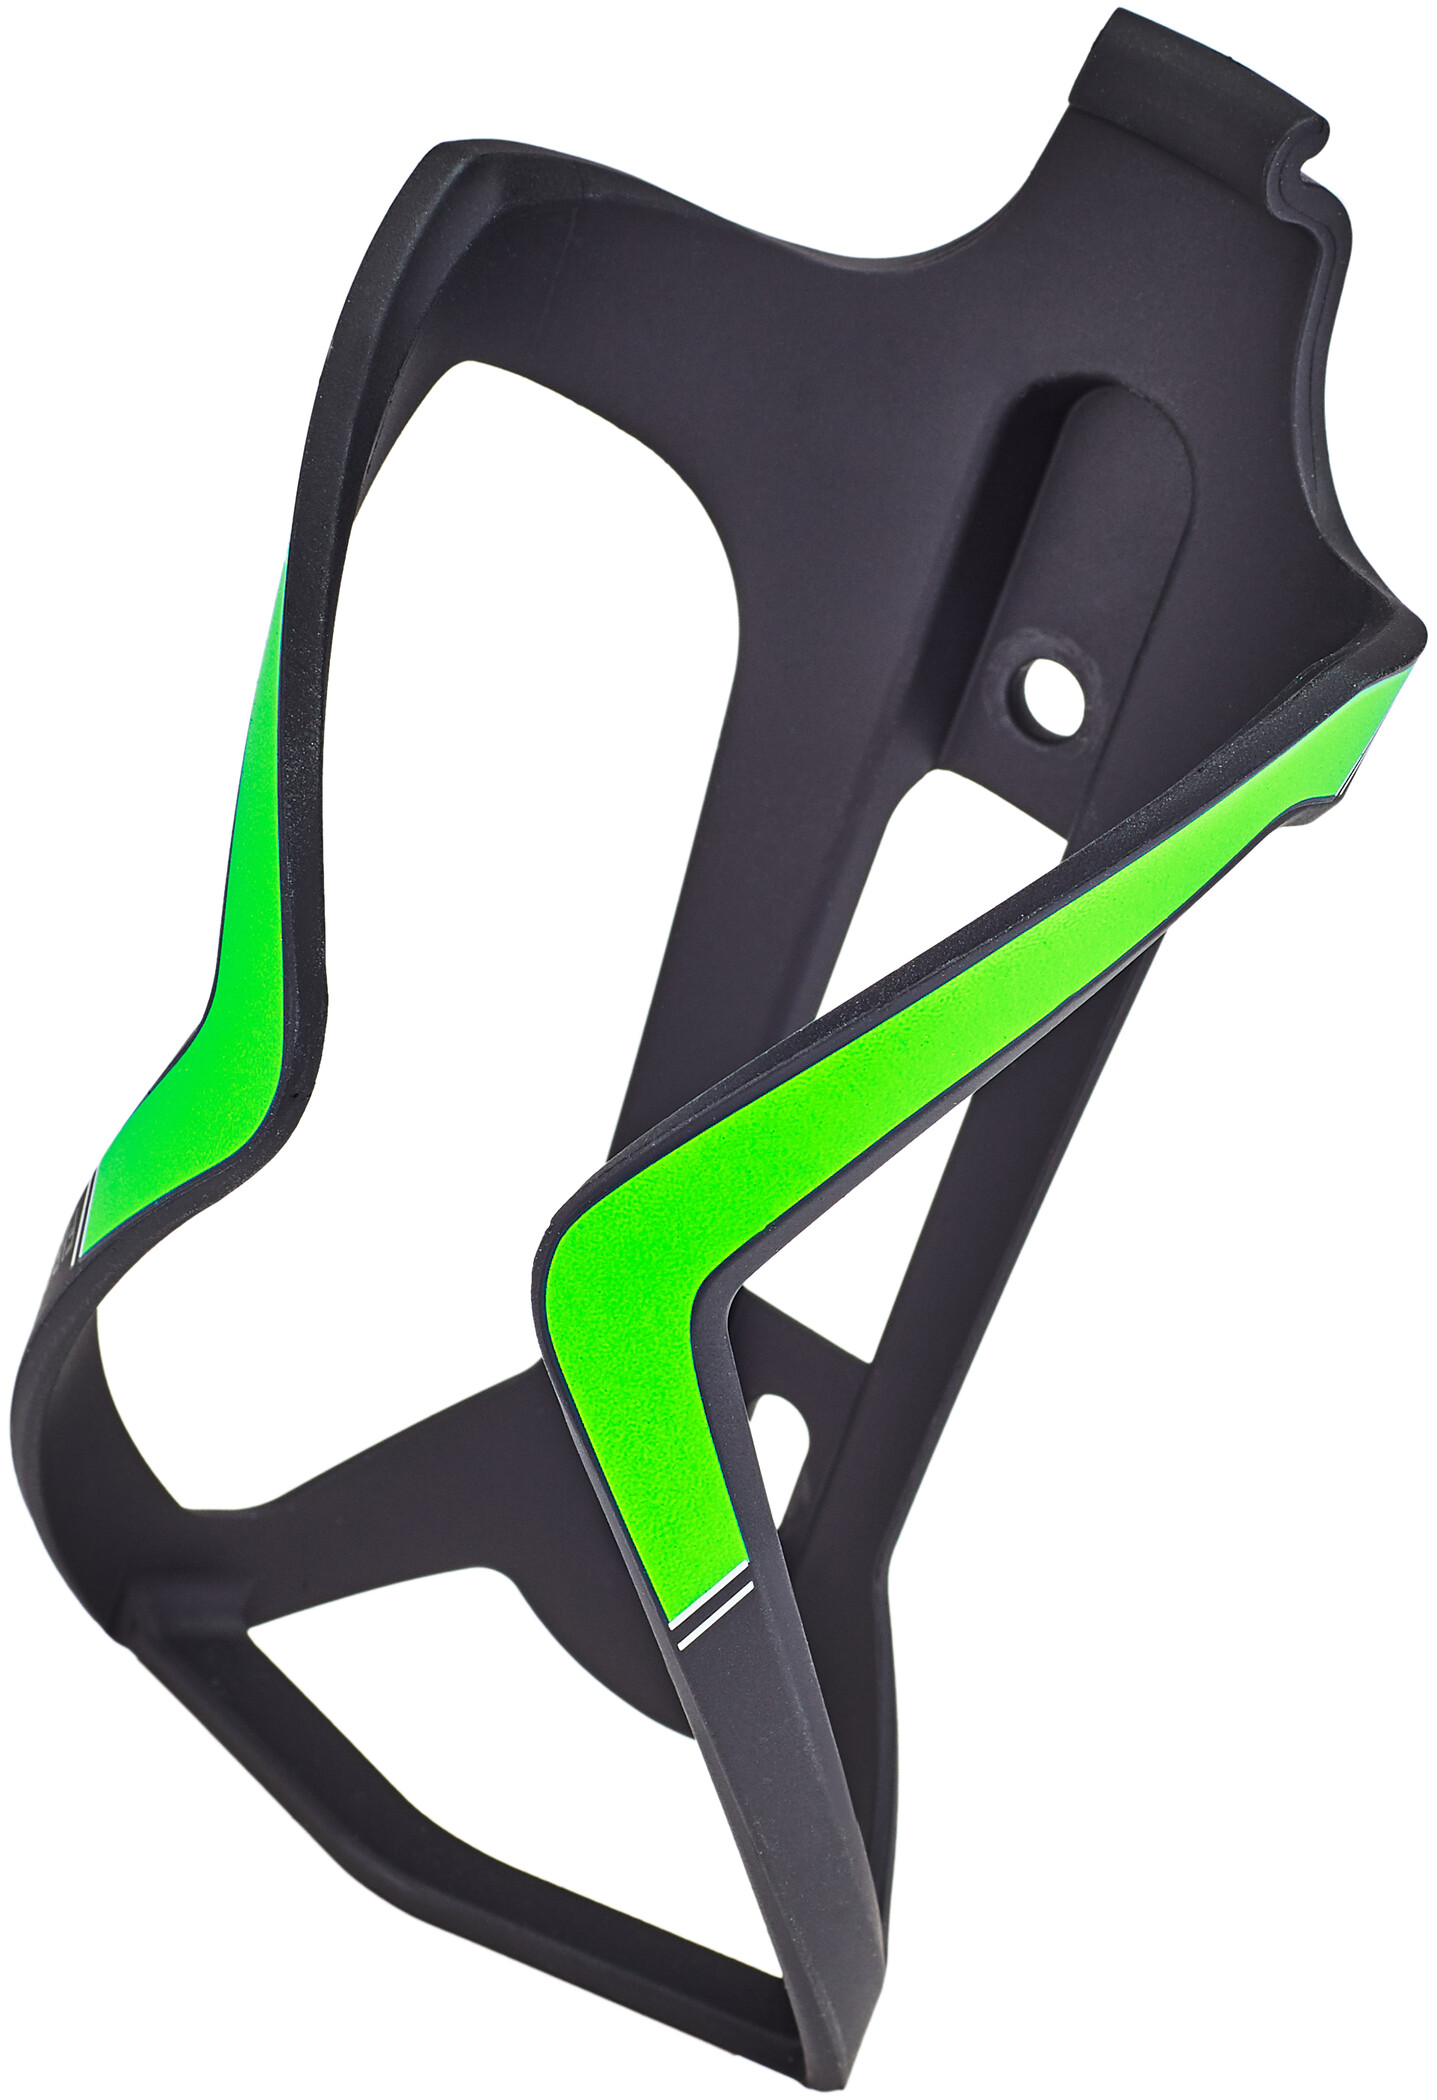 BBB FlexCage BBC-36 Flaskeholder, matte black/green (2019) | Bottle cages